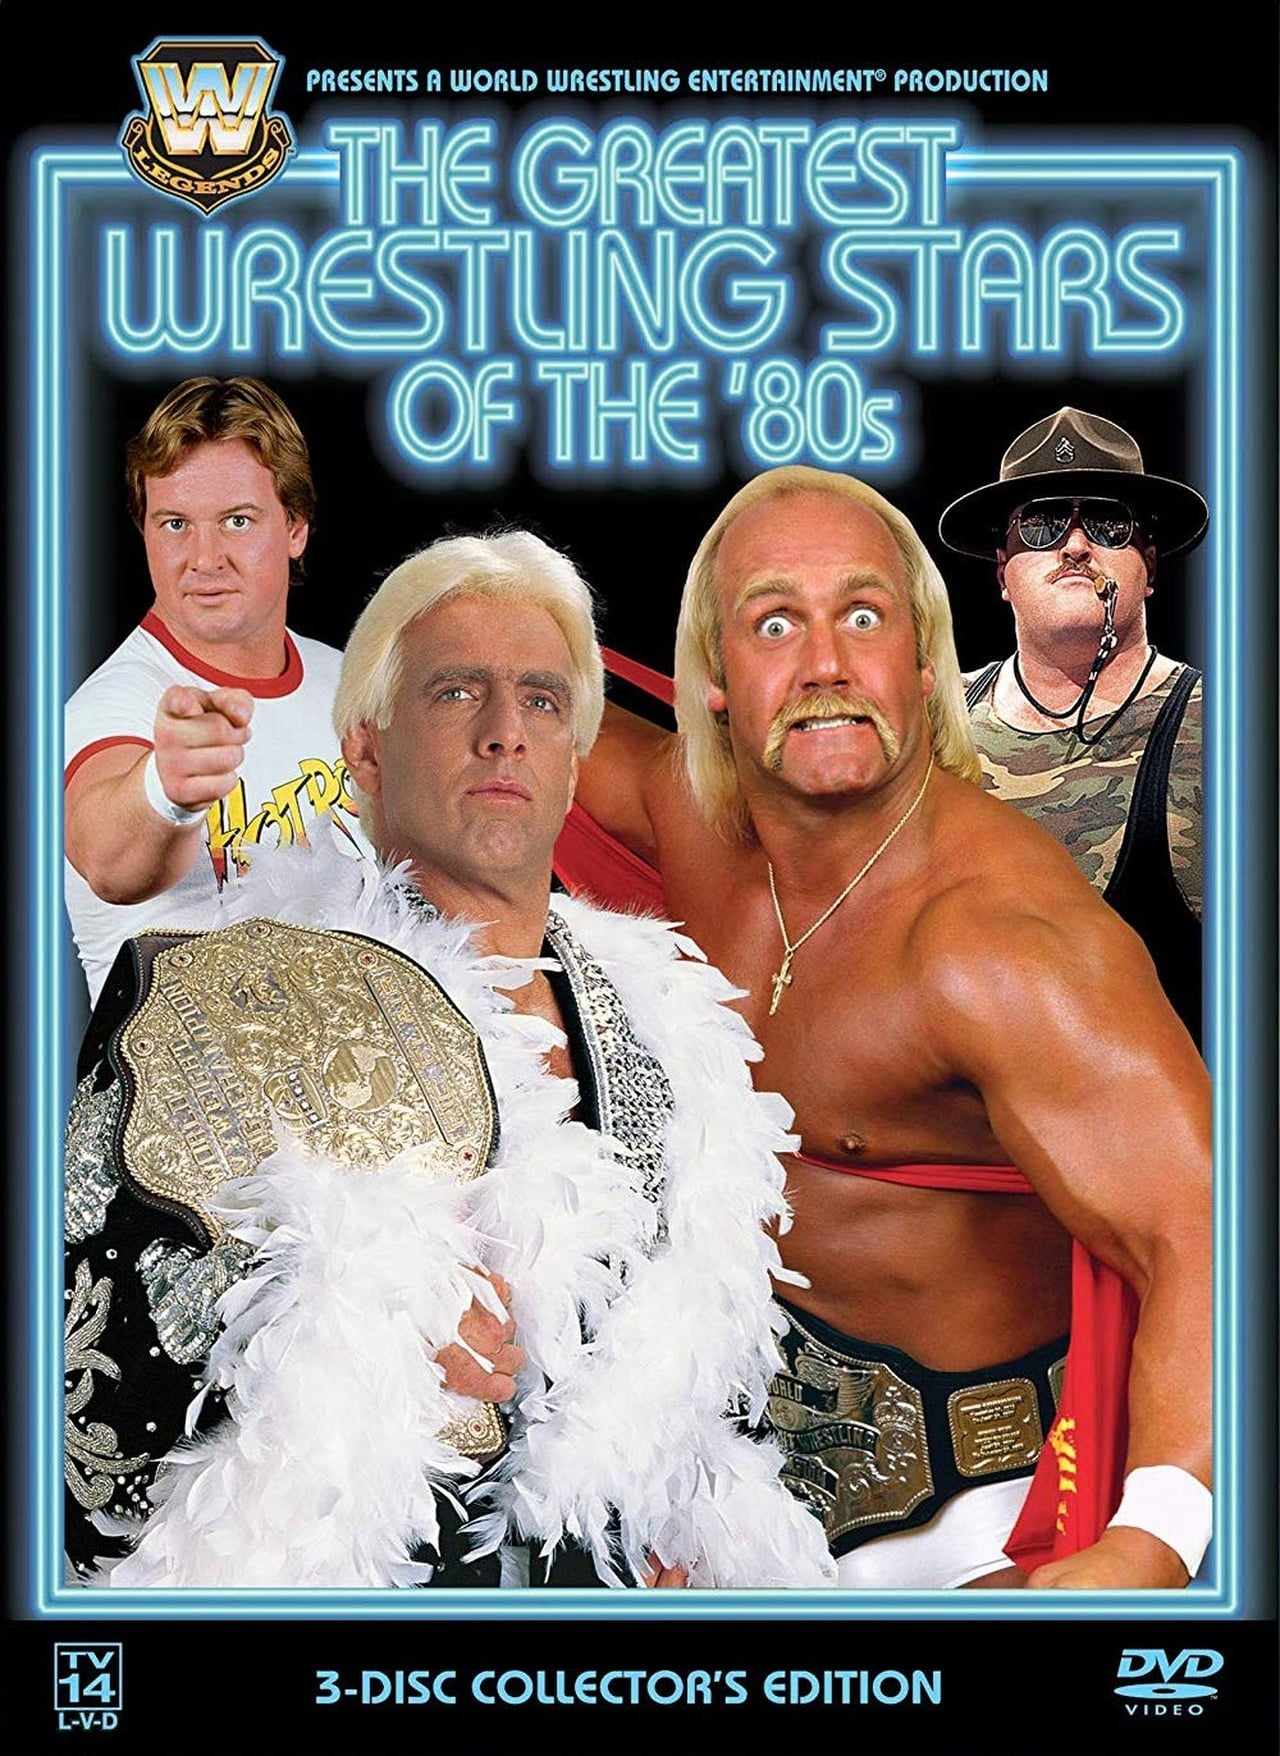 WWE: The Greatest Wrestling Stars of the 80's